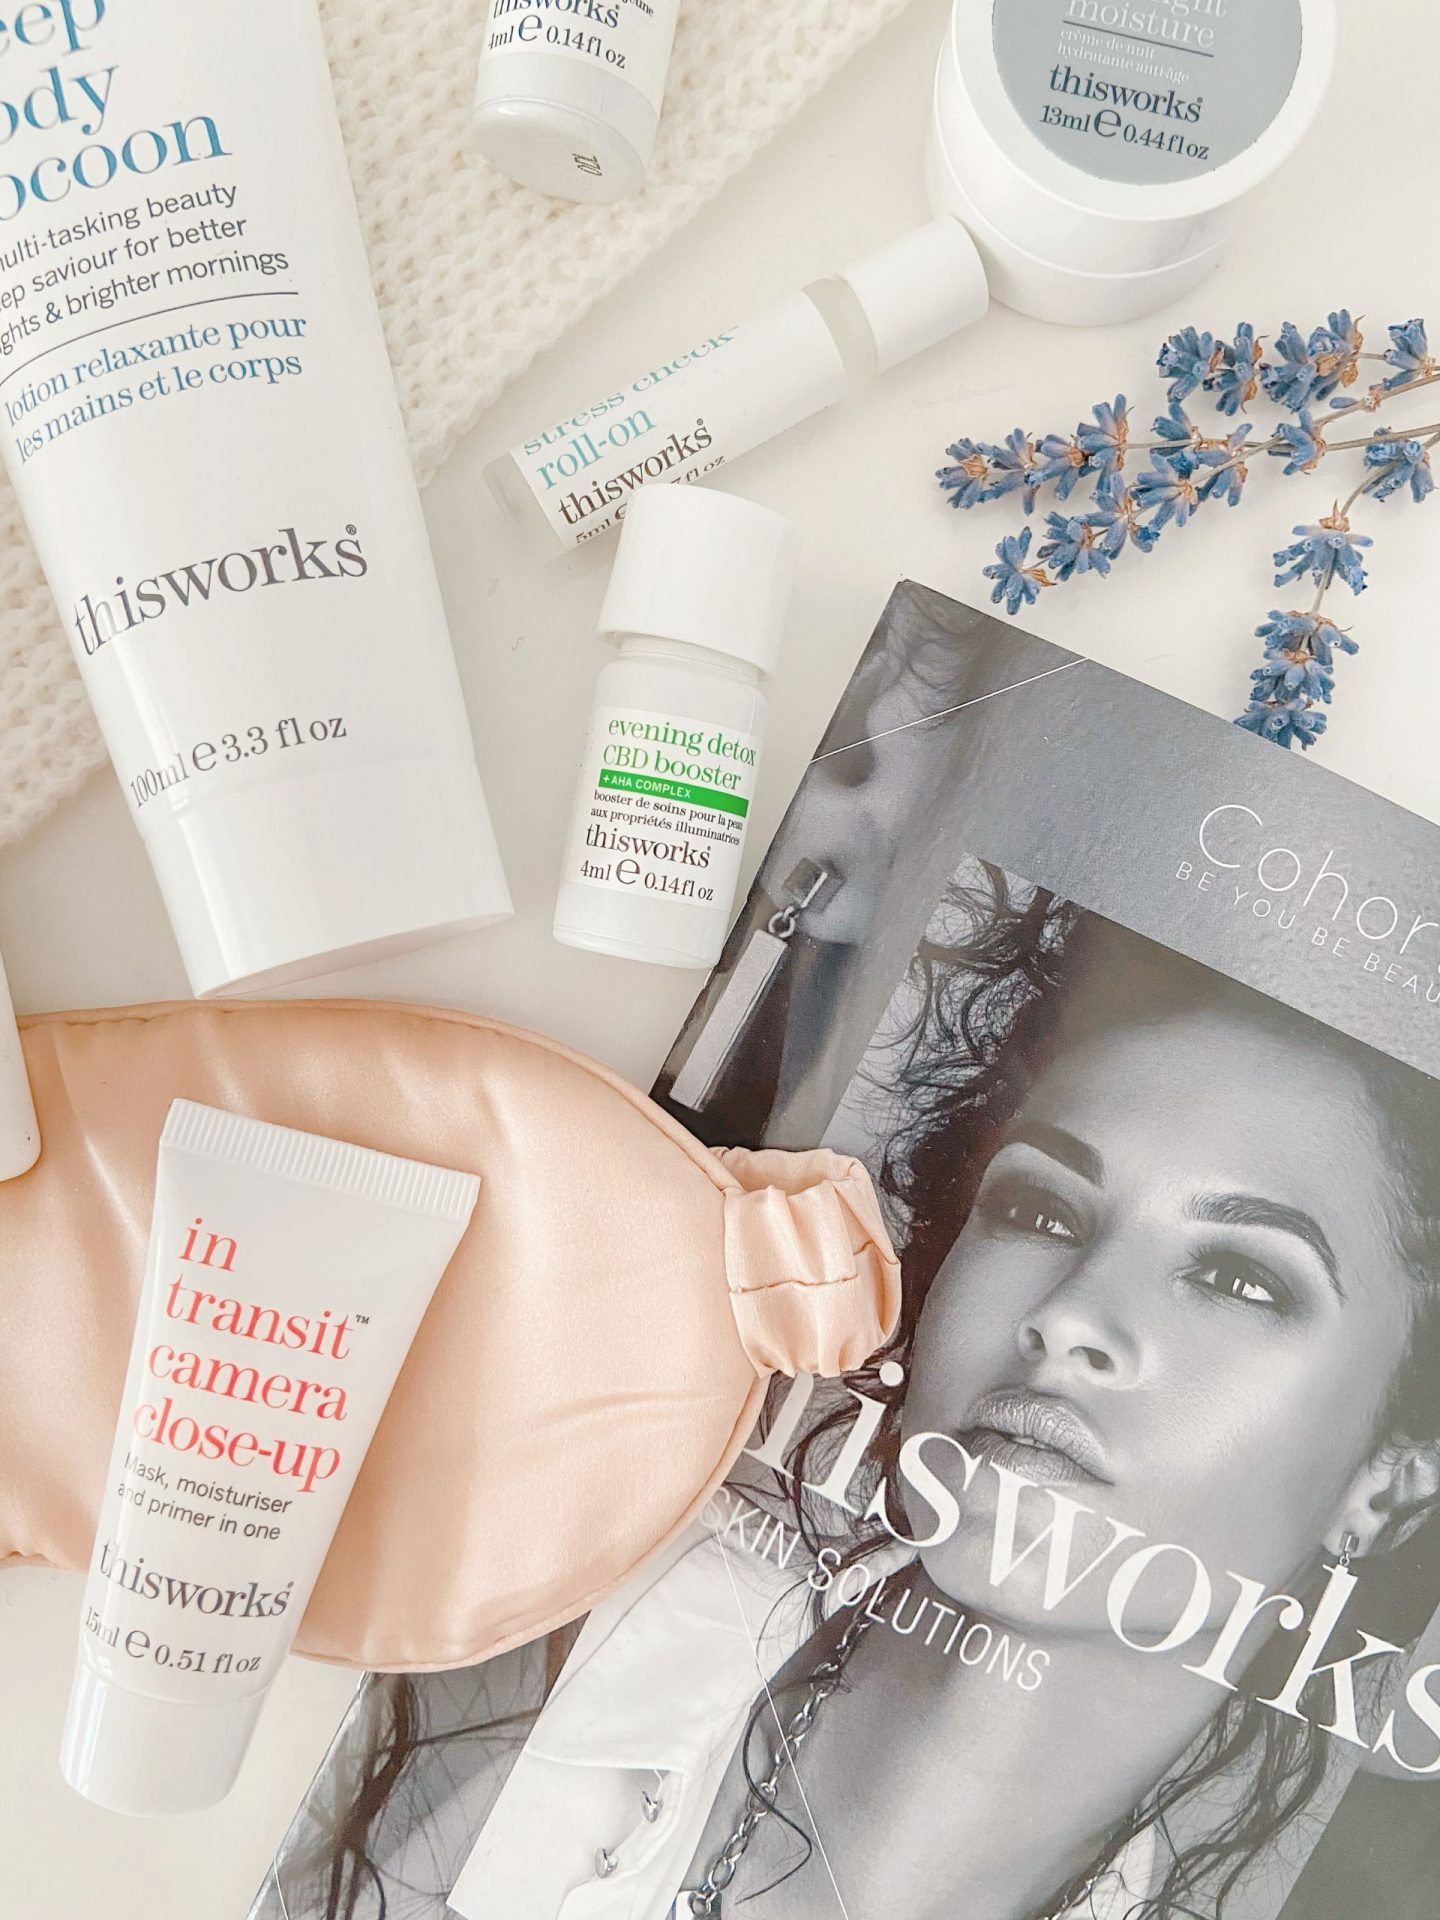 Cohorted June Beauty Box x This Works